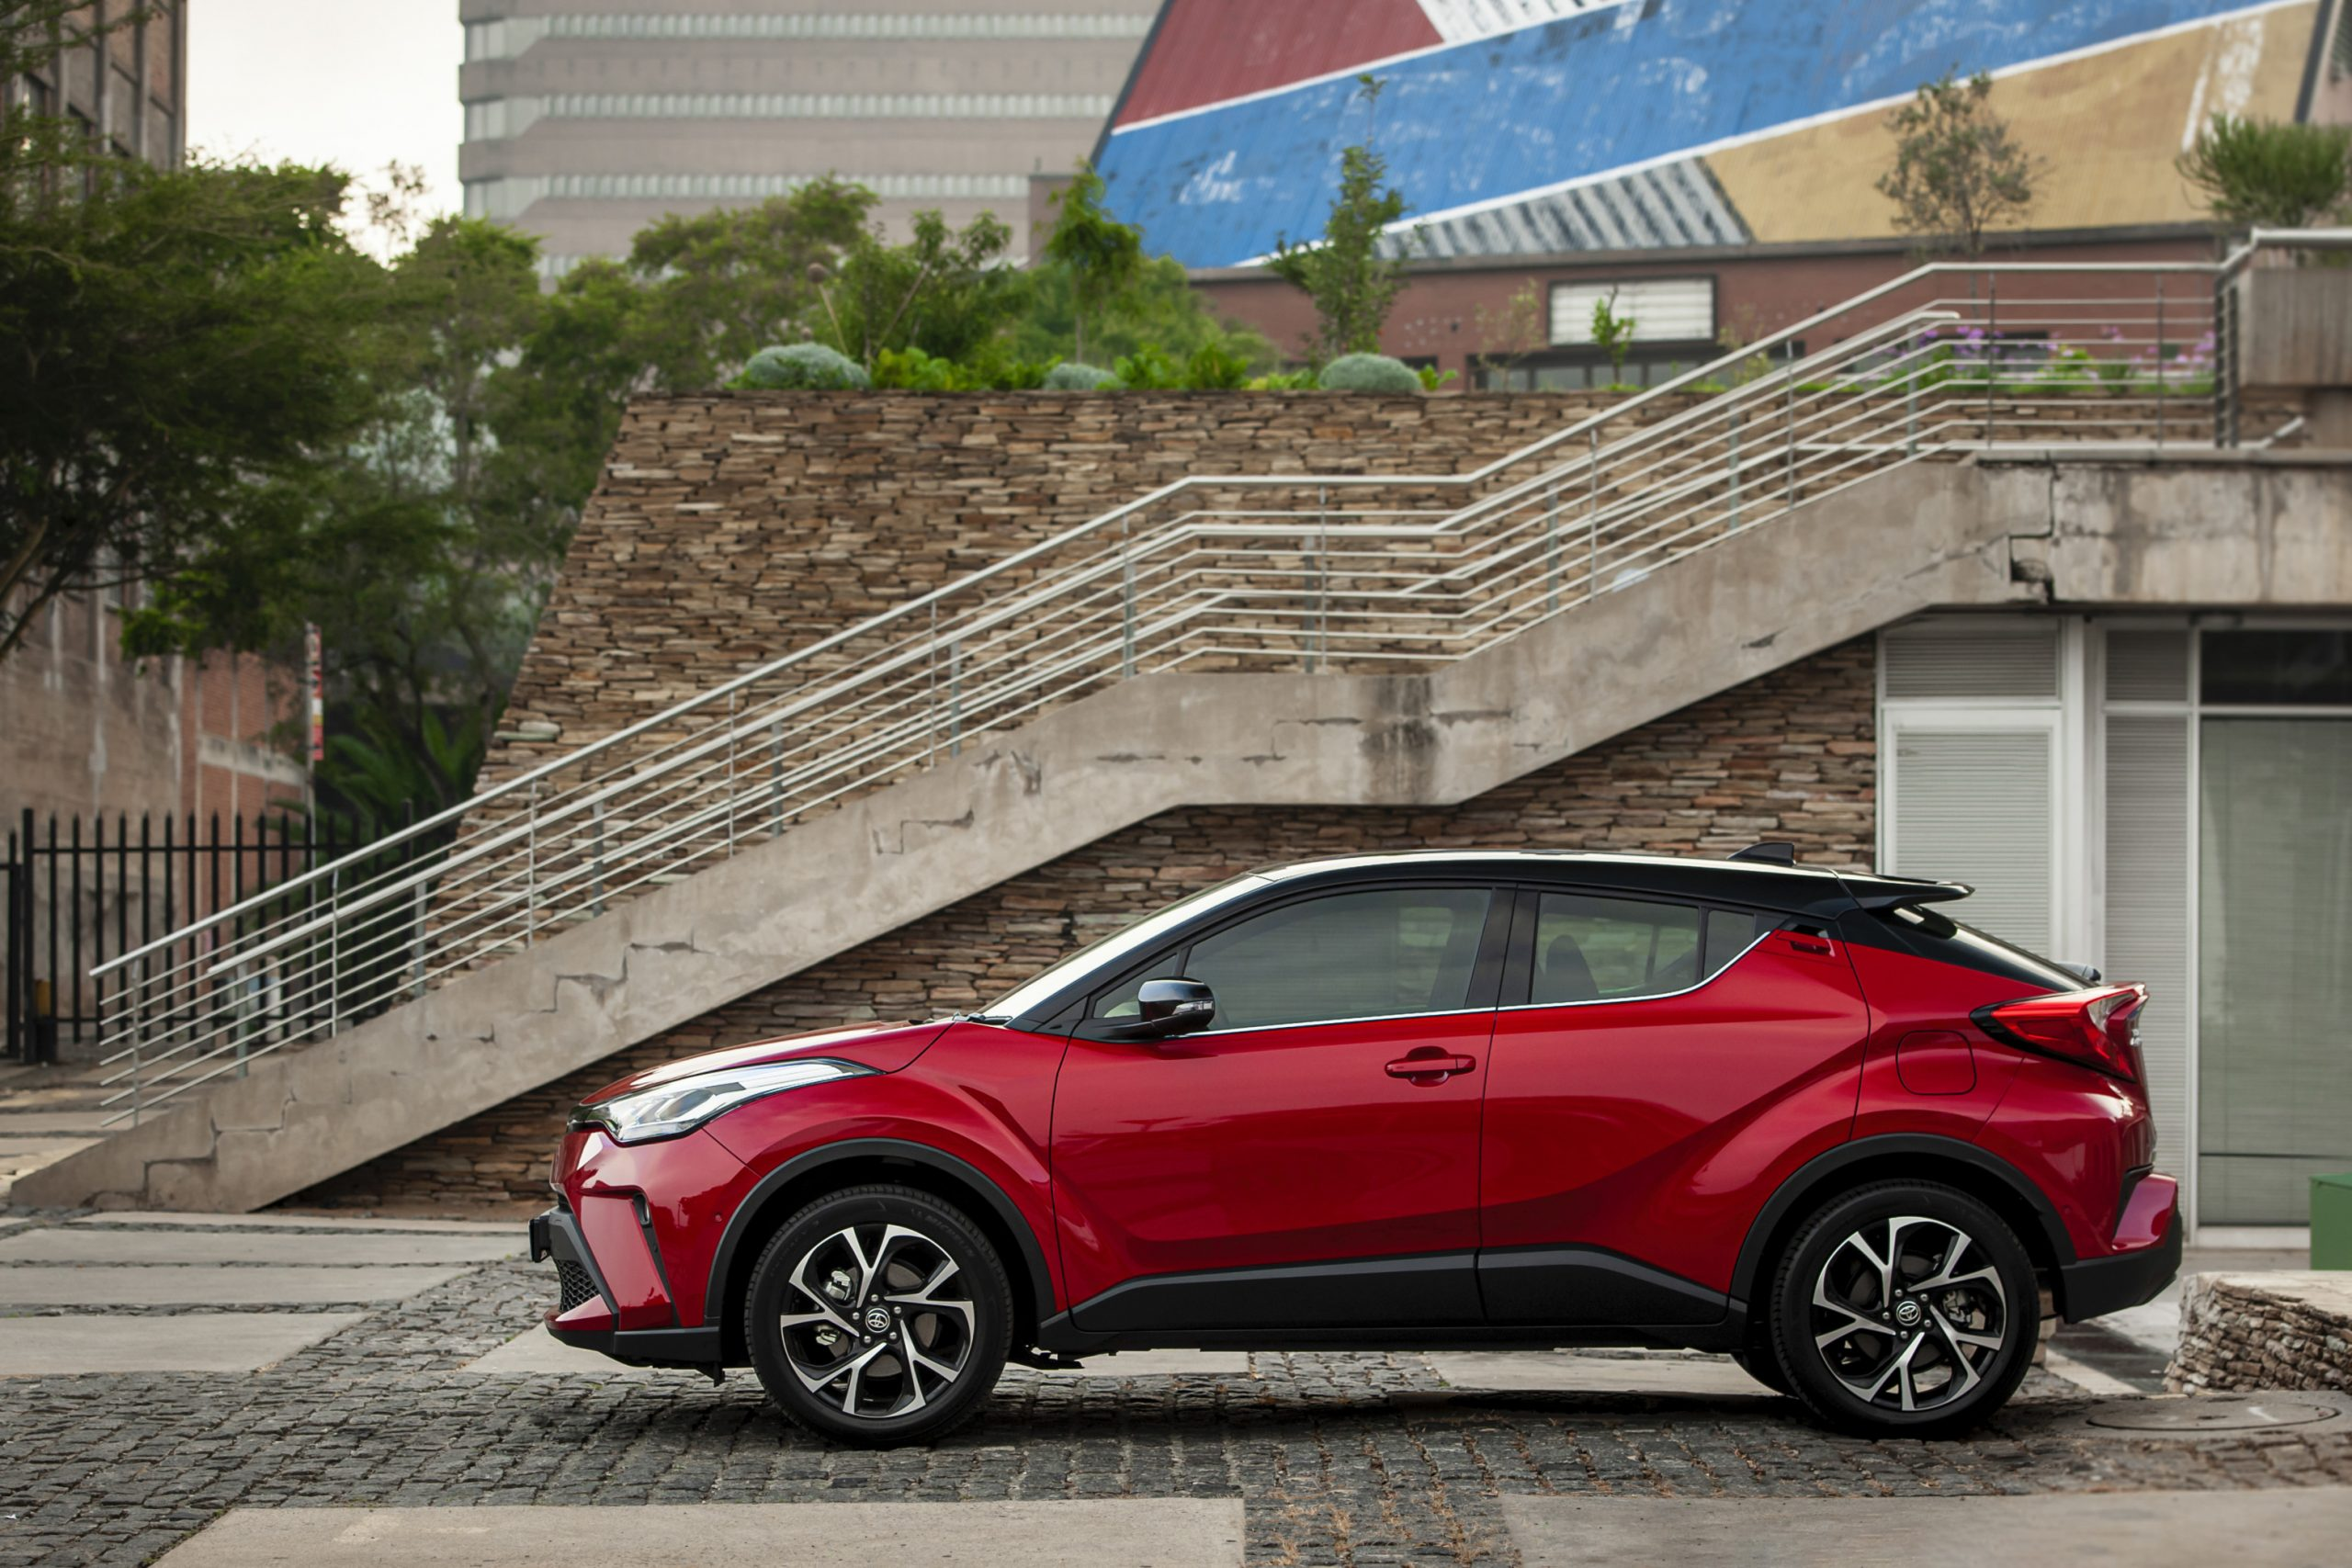 Toyota C-HR | crossover | compact | coupe high rider